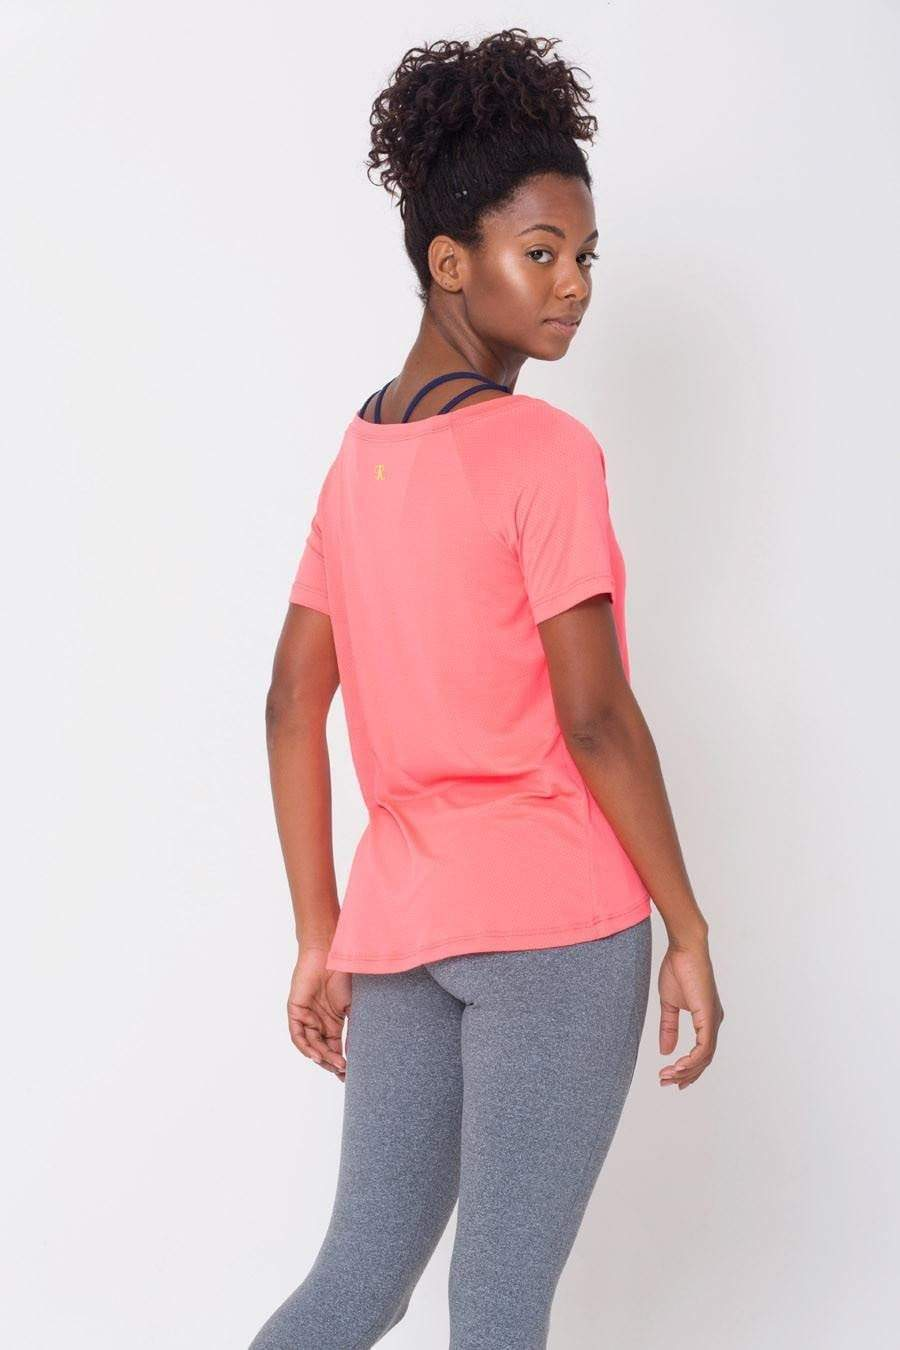 Peach Raglan V-neck Tee - SFG Wellness